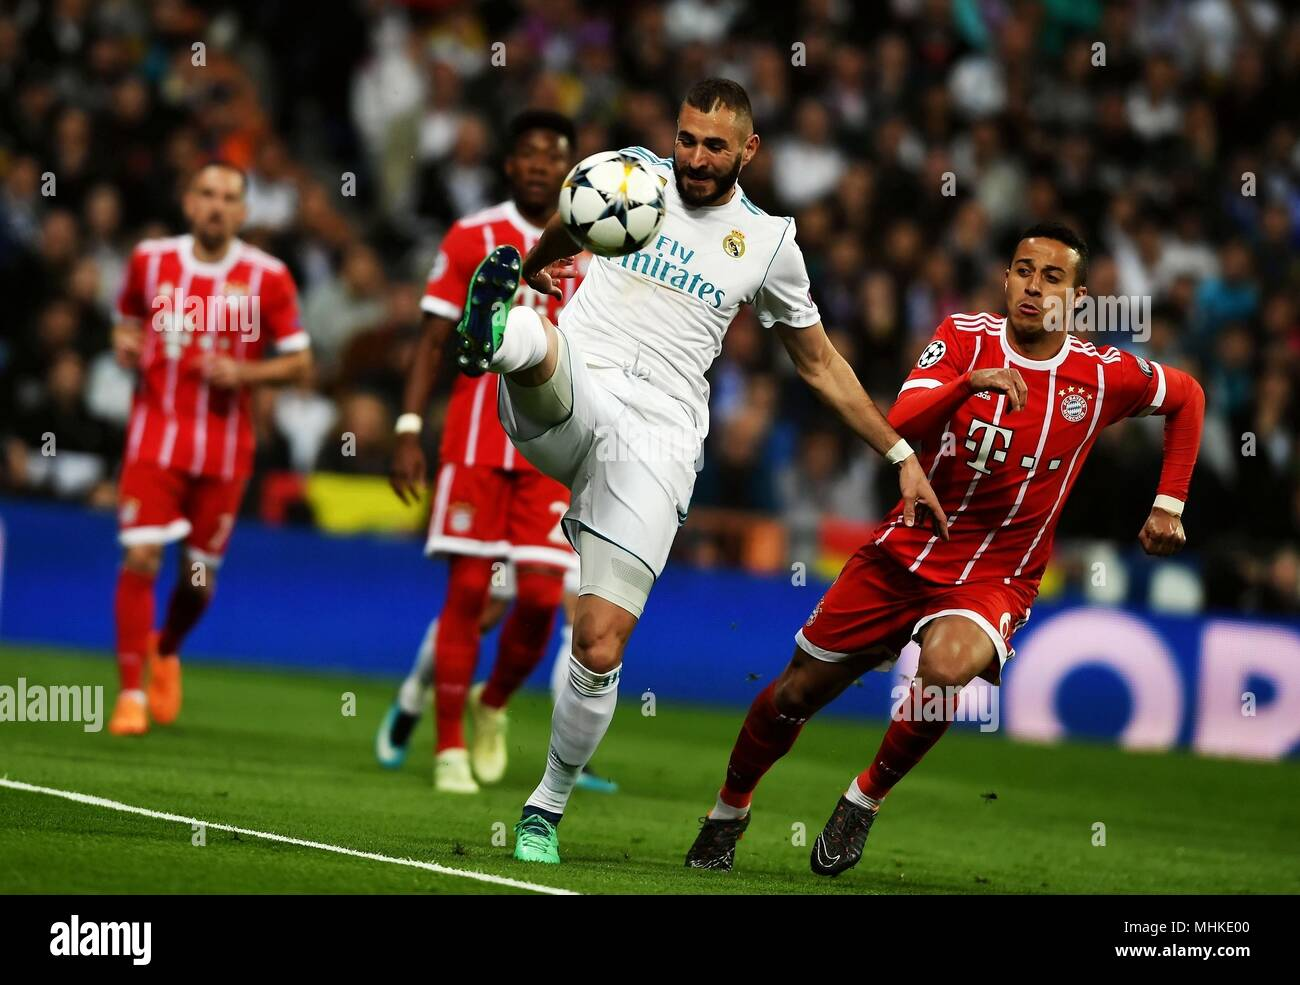 Madrid, Spain. 1st May, 2018. Real Madrid's Karim Benzema (Front) competes during a UEFA Champions League semifinal second leg soccer match between?Spanish team Real Madrid and German team Bayern Munchen in Madrid, Spain, on May 1, 2018. The match ended 2-2. Real Madrid advanced to the final with 4-3 on aggregate. Credit: Guo Qiuda/Xinhua/Alamy Live News - Stock Image